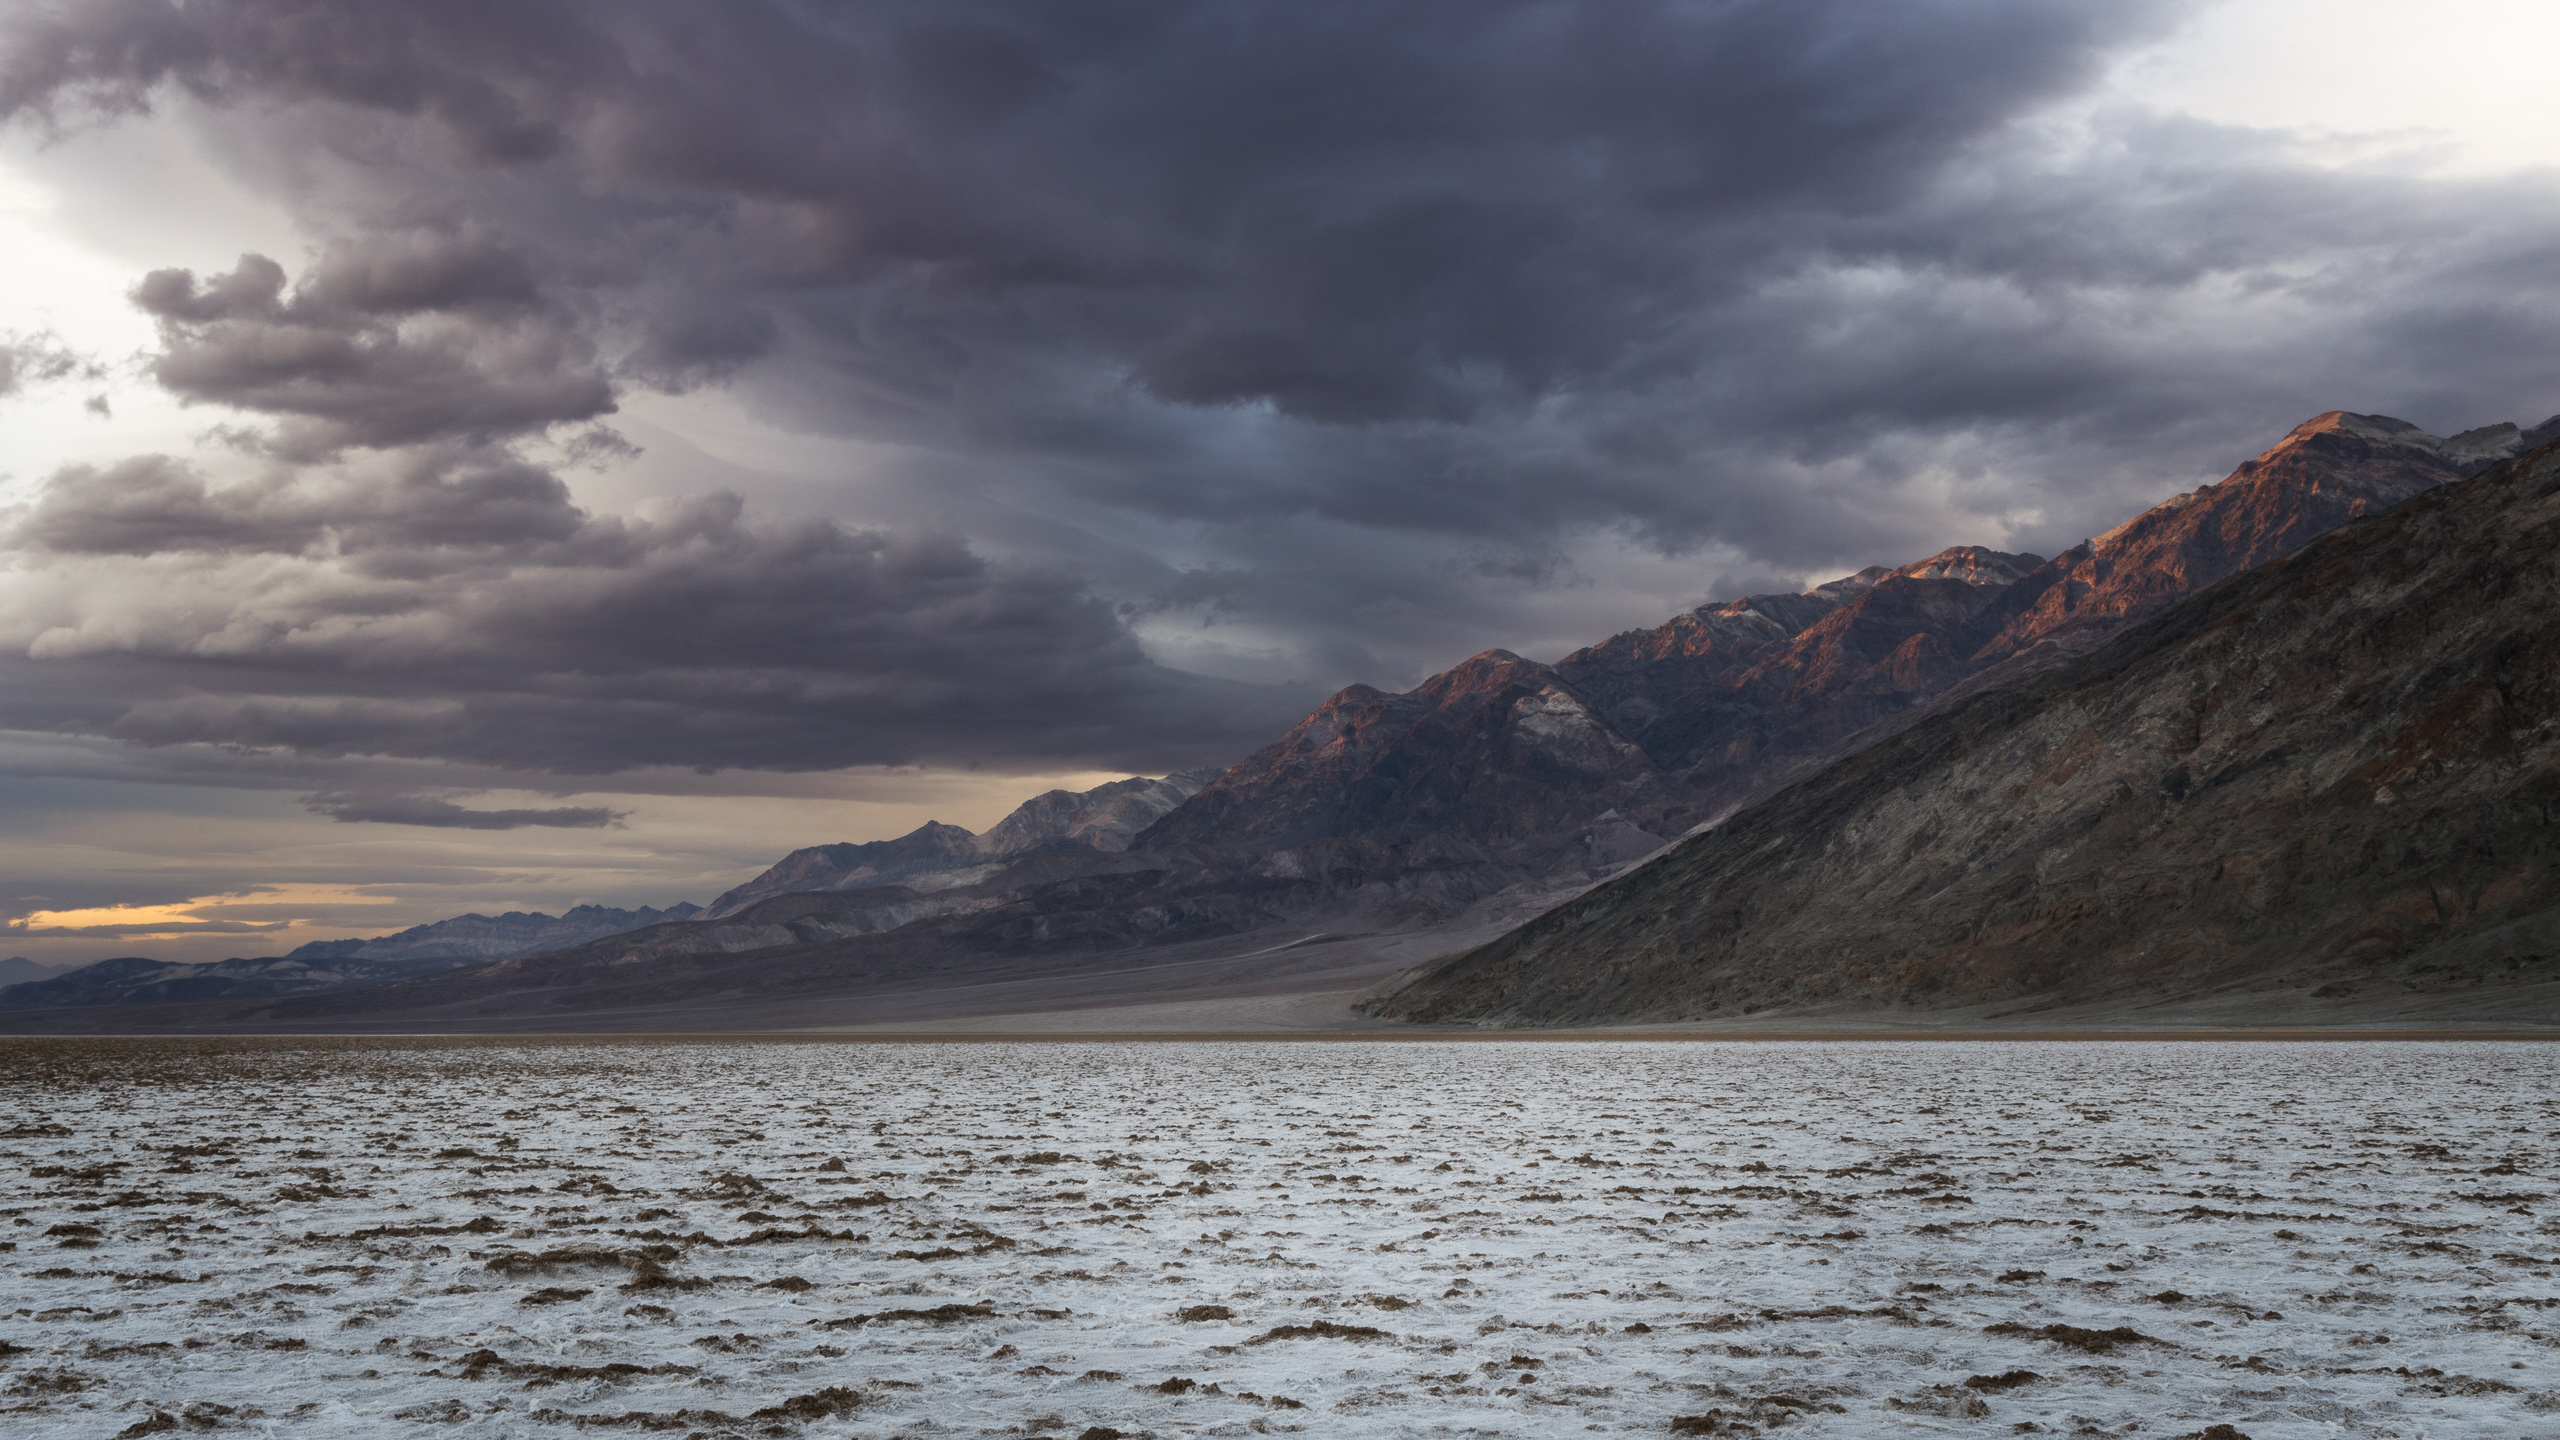 SMR_1746-McLean-Badwater-Basin-Featured